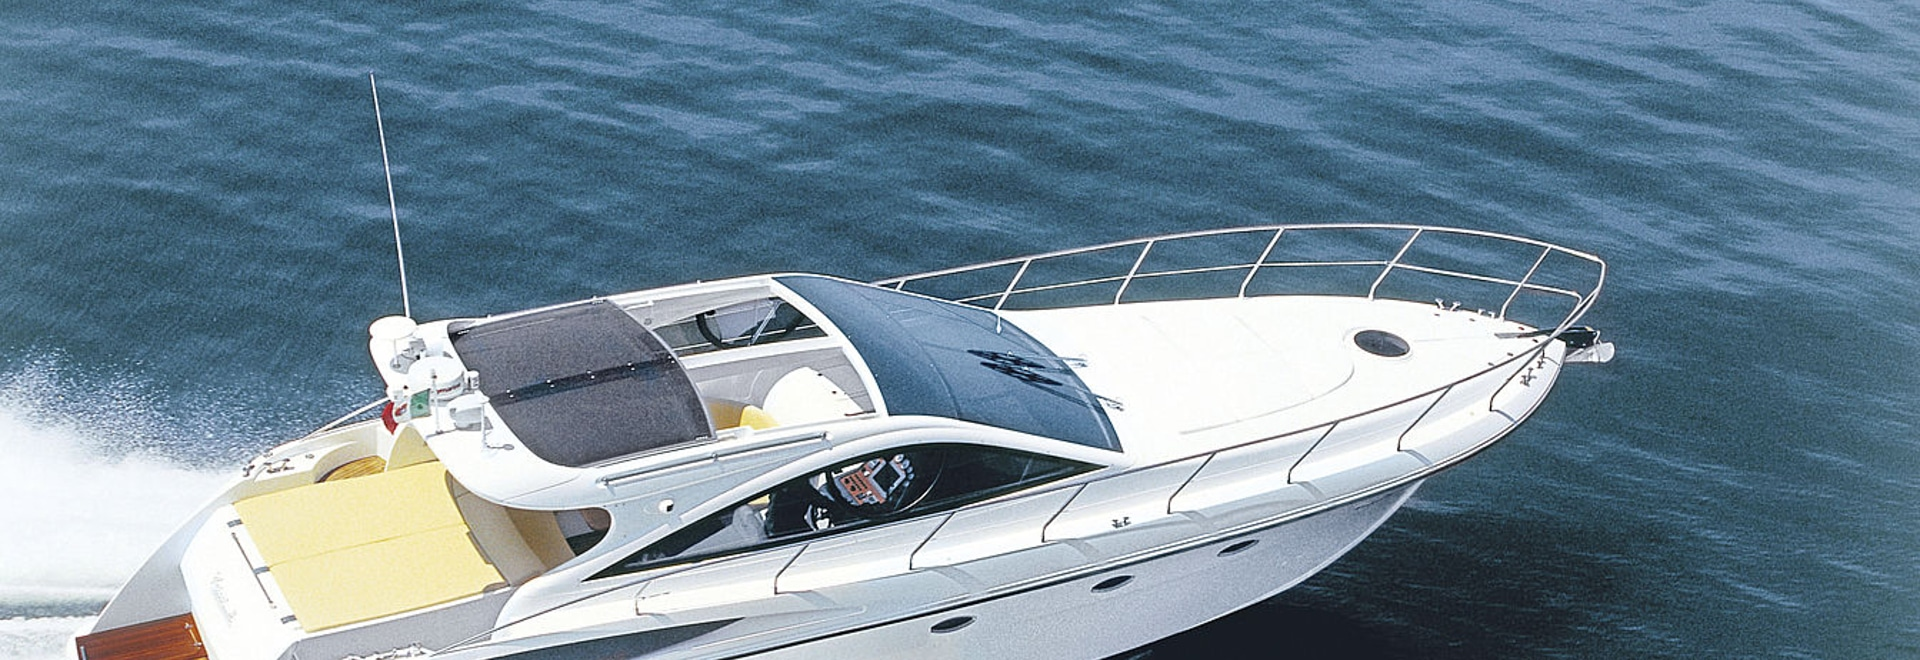 DC 13 Elite - CANNES YACHTING FESTIVAL 2015